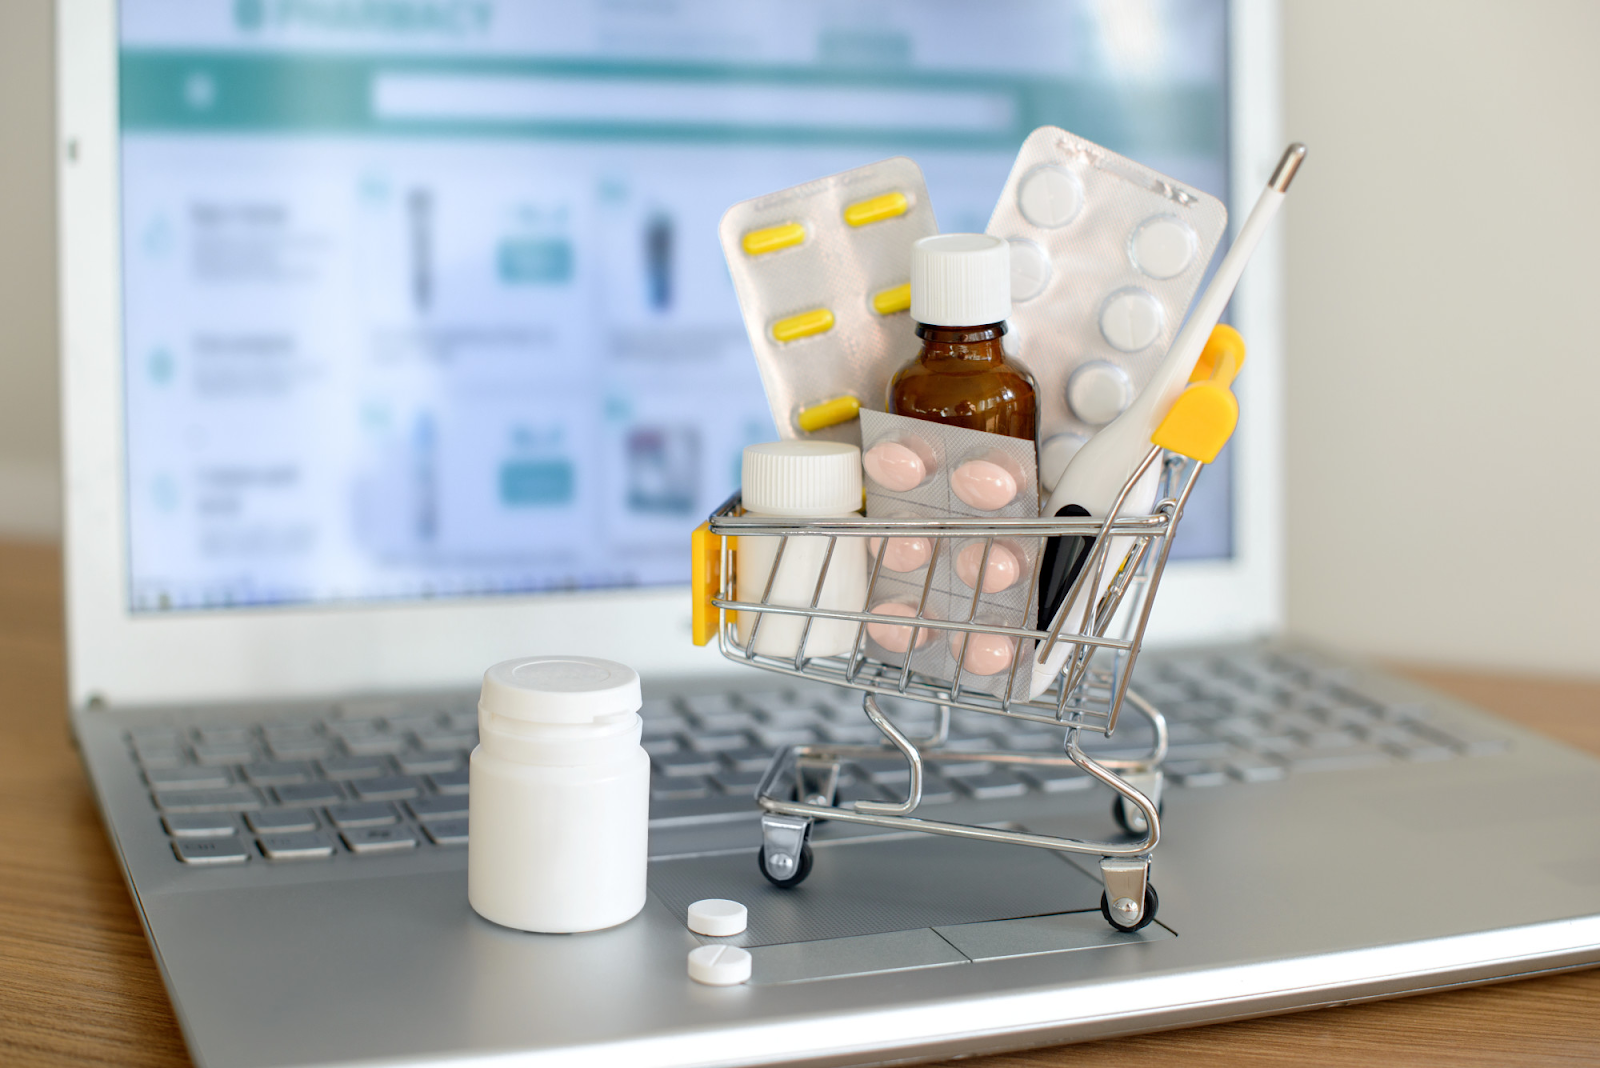 Buying Medication Online? What You Need to Know About Online Pharmacies